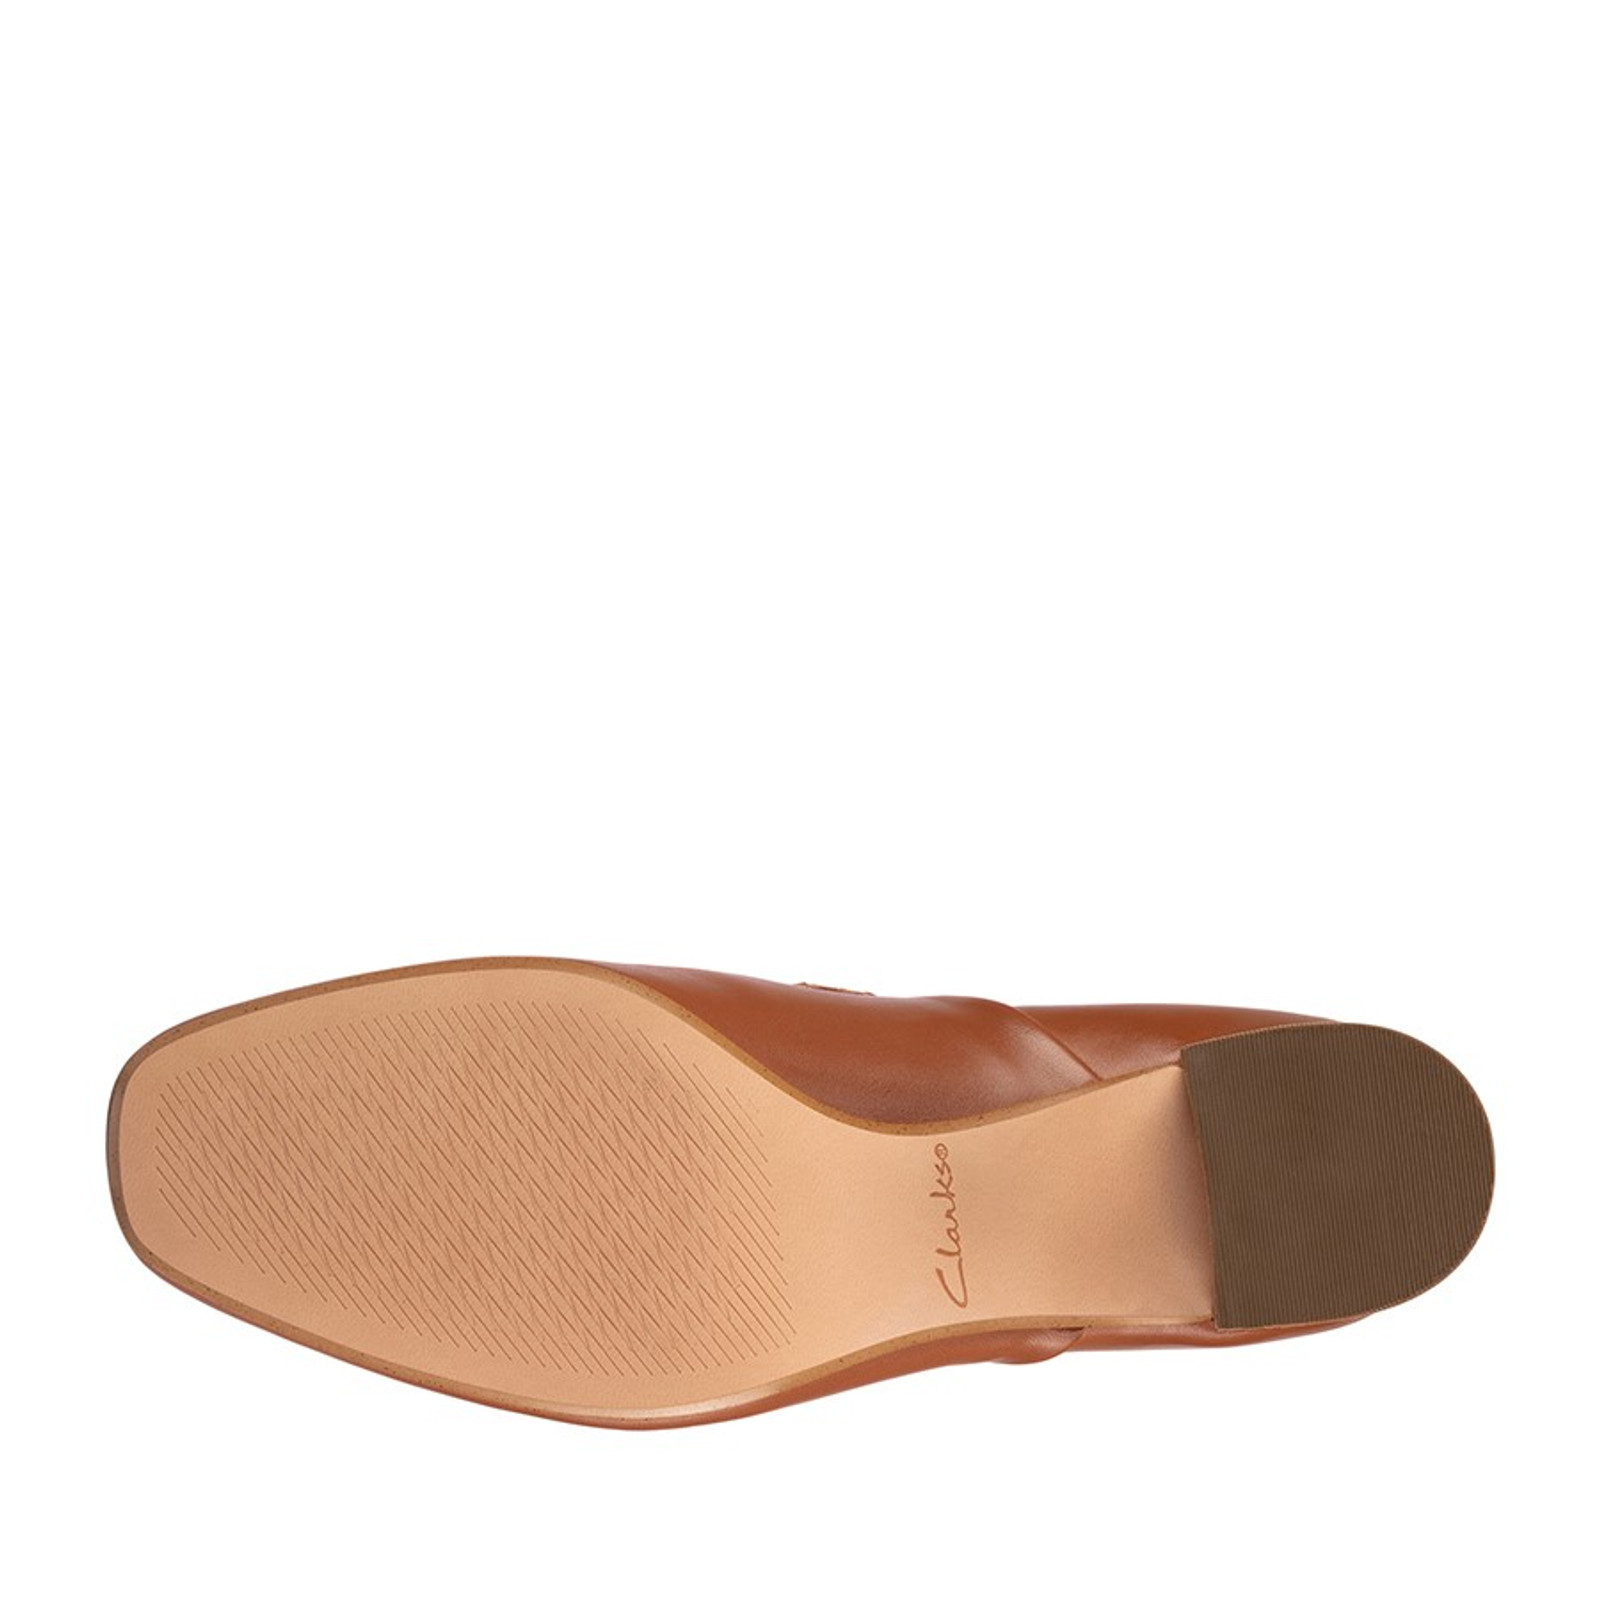 Clarks Womens SHEER LILY 2 Tan Leather